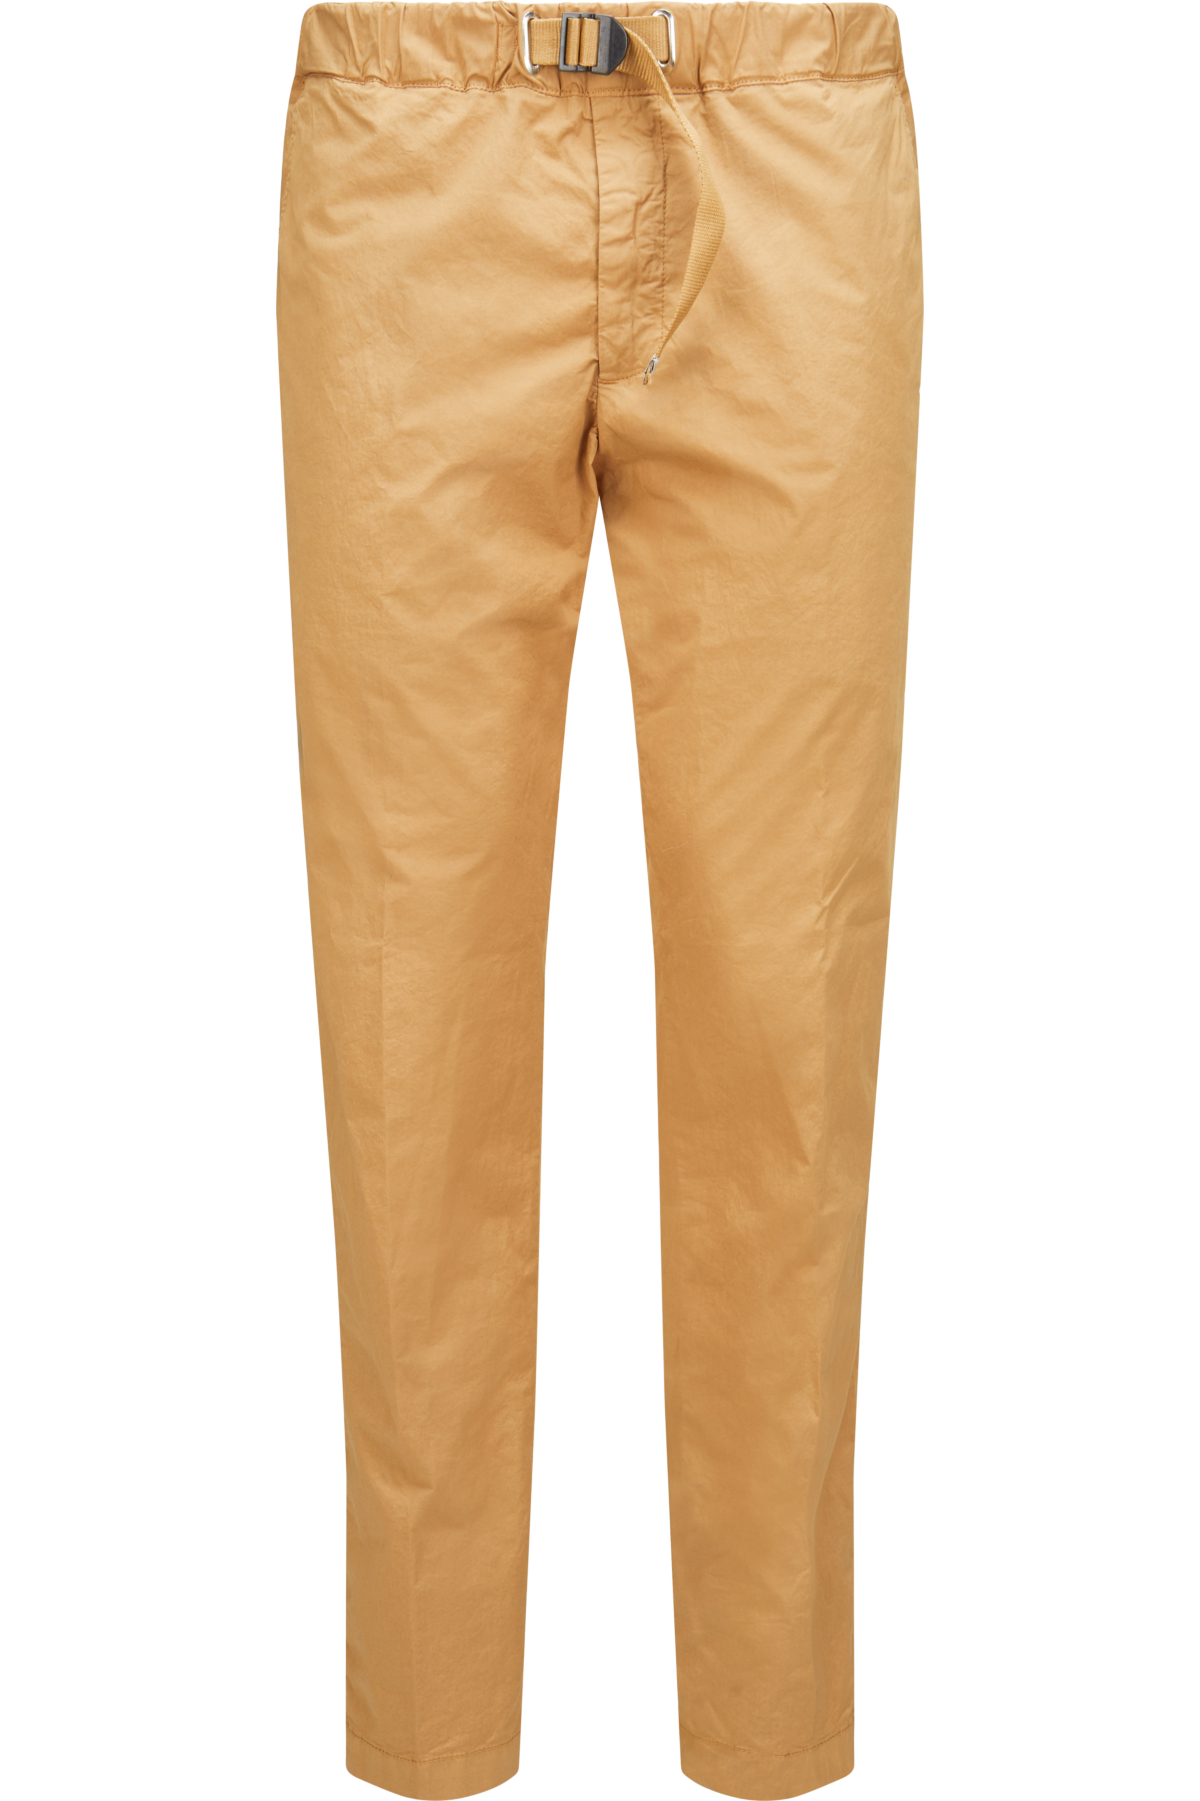 White Sand Chino-Hose in Beige 432109